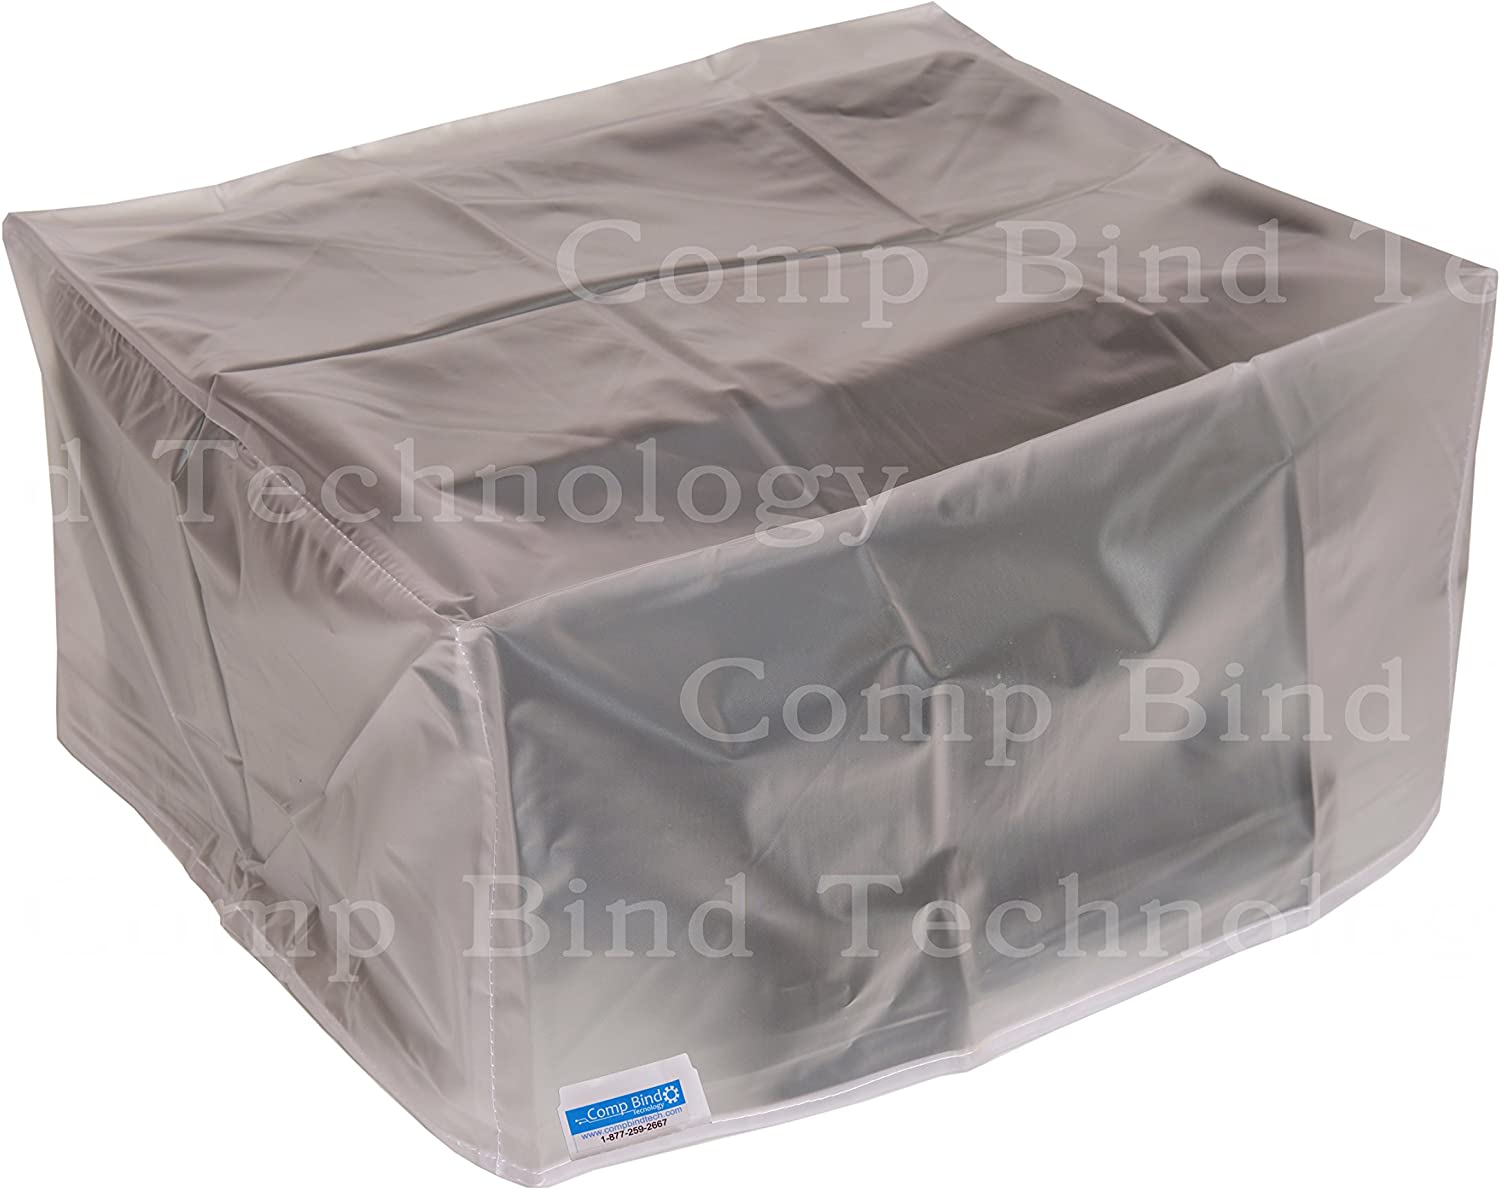 Comp Bind Technology Dust Cover for HP Envy Photo 7855 All-in-One Printer, Clear Vinyl Anti-Static Dust Cover, Dimensions 17.80''W x 16.20''D x 7.50''H